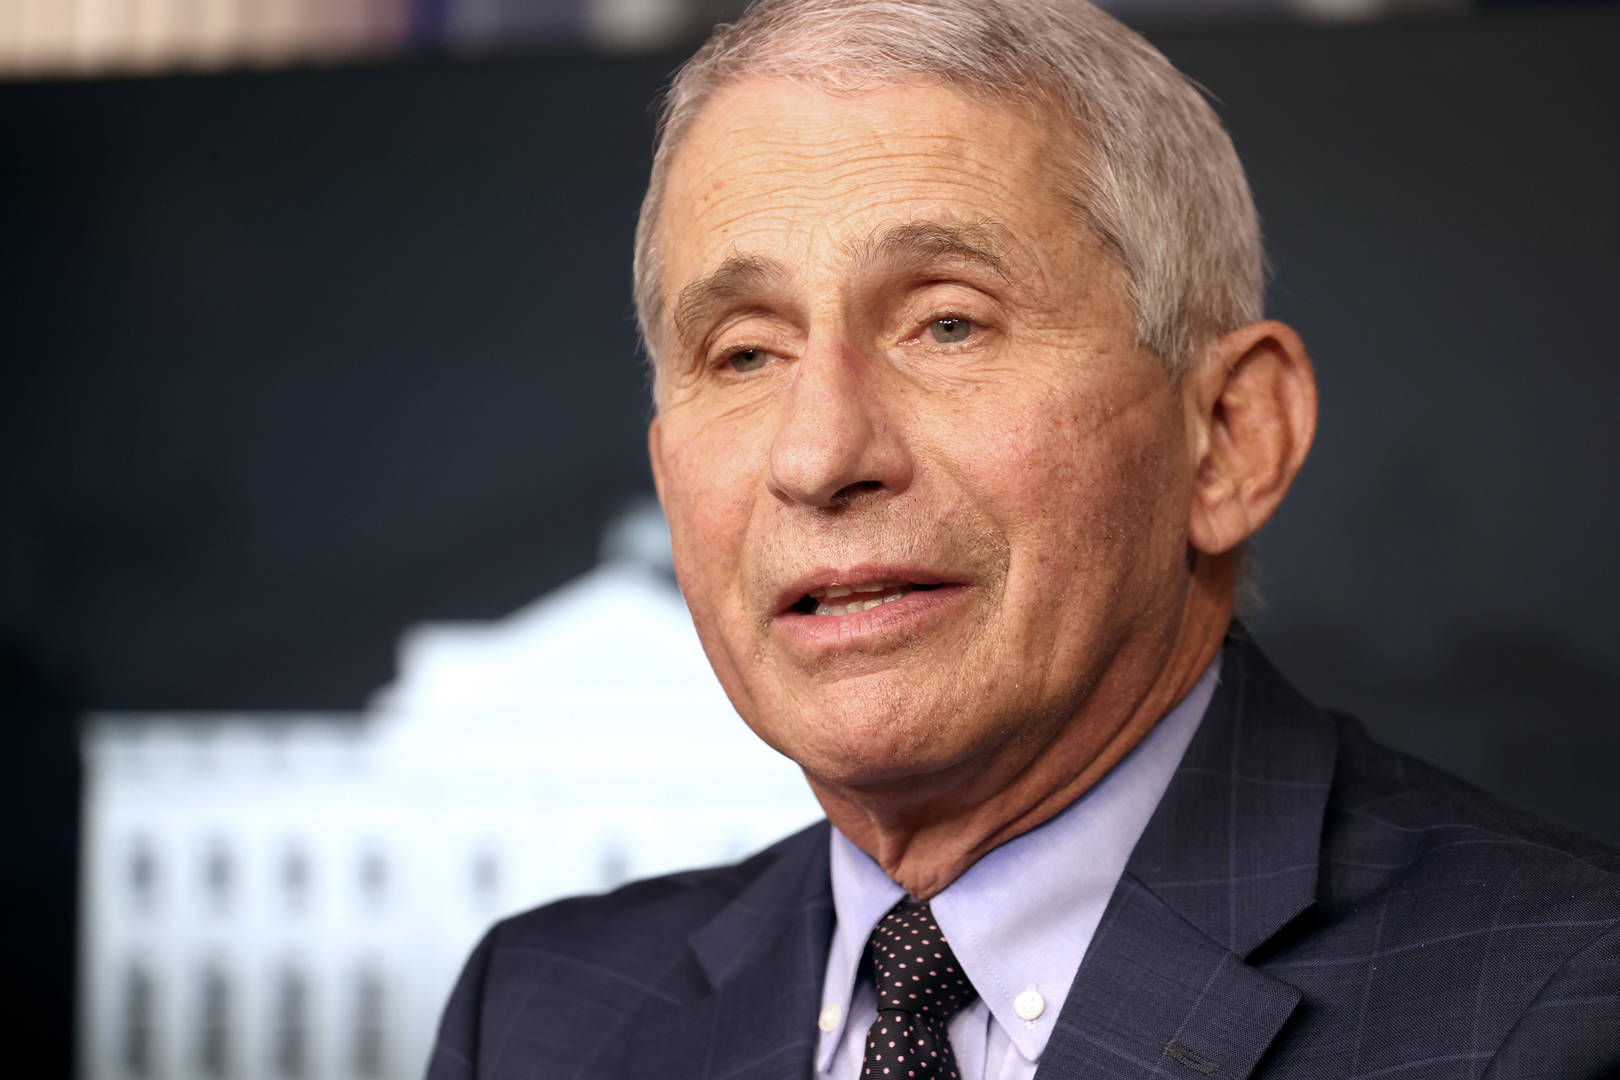 Dr. Fauci Details Horrific Death Threats Received During 2020